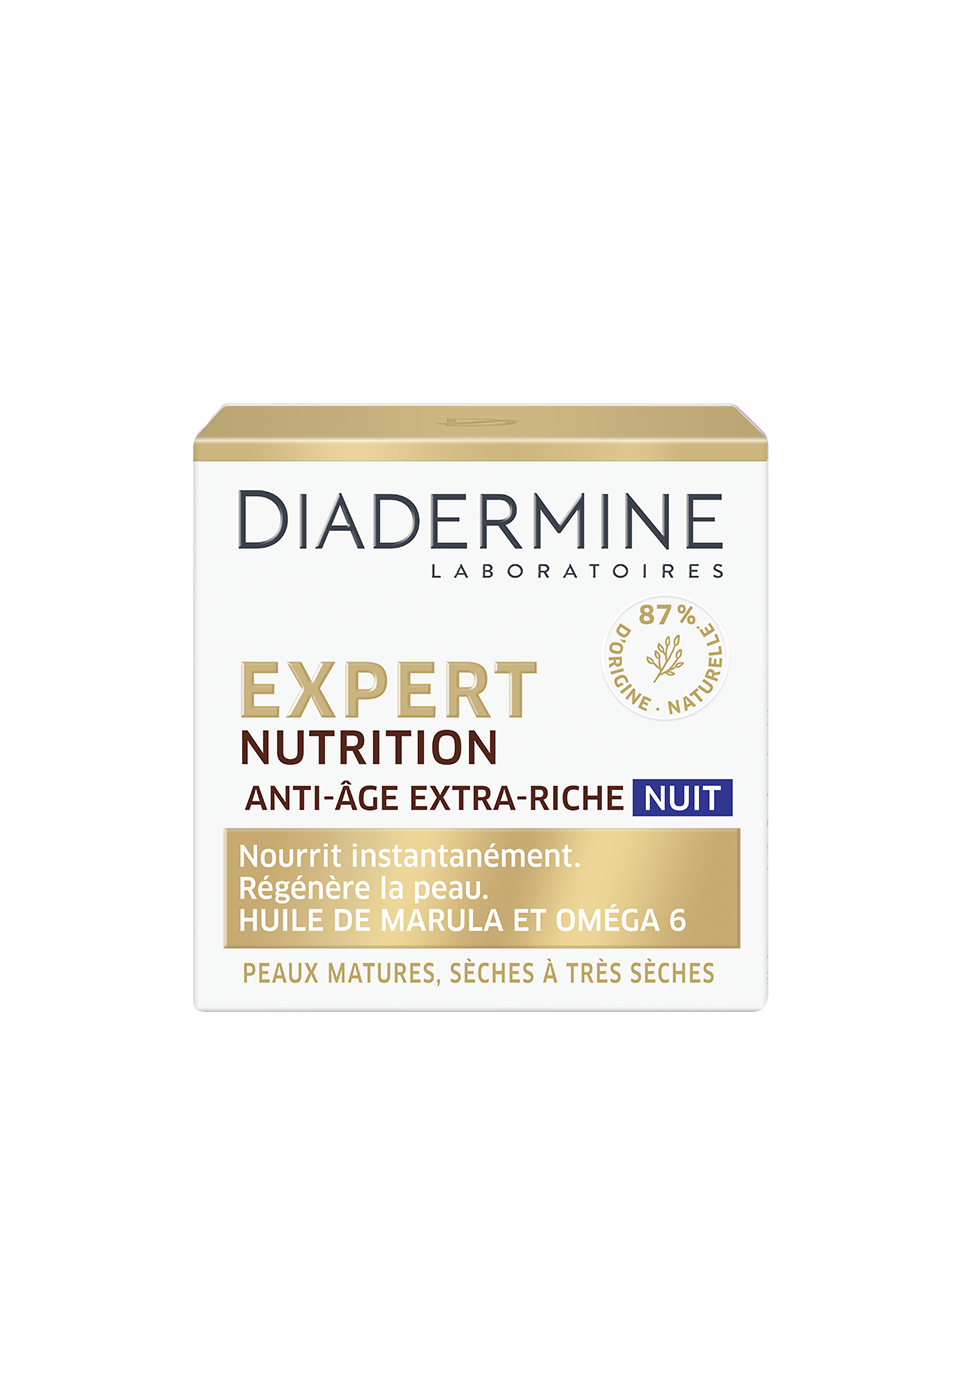 expert nutrition anti-age extra-riche nuit